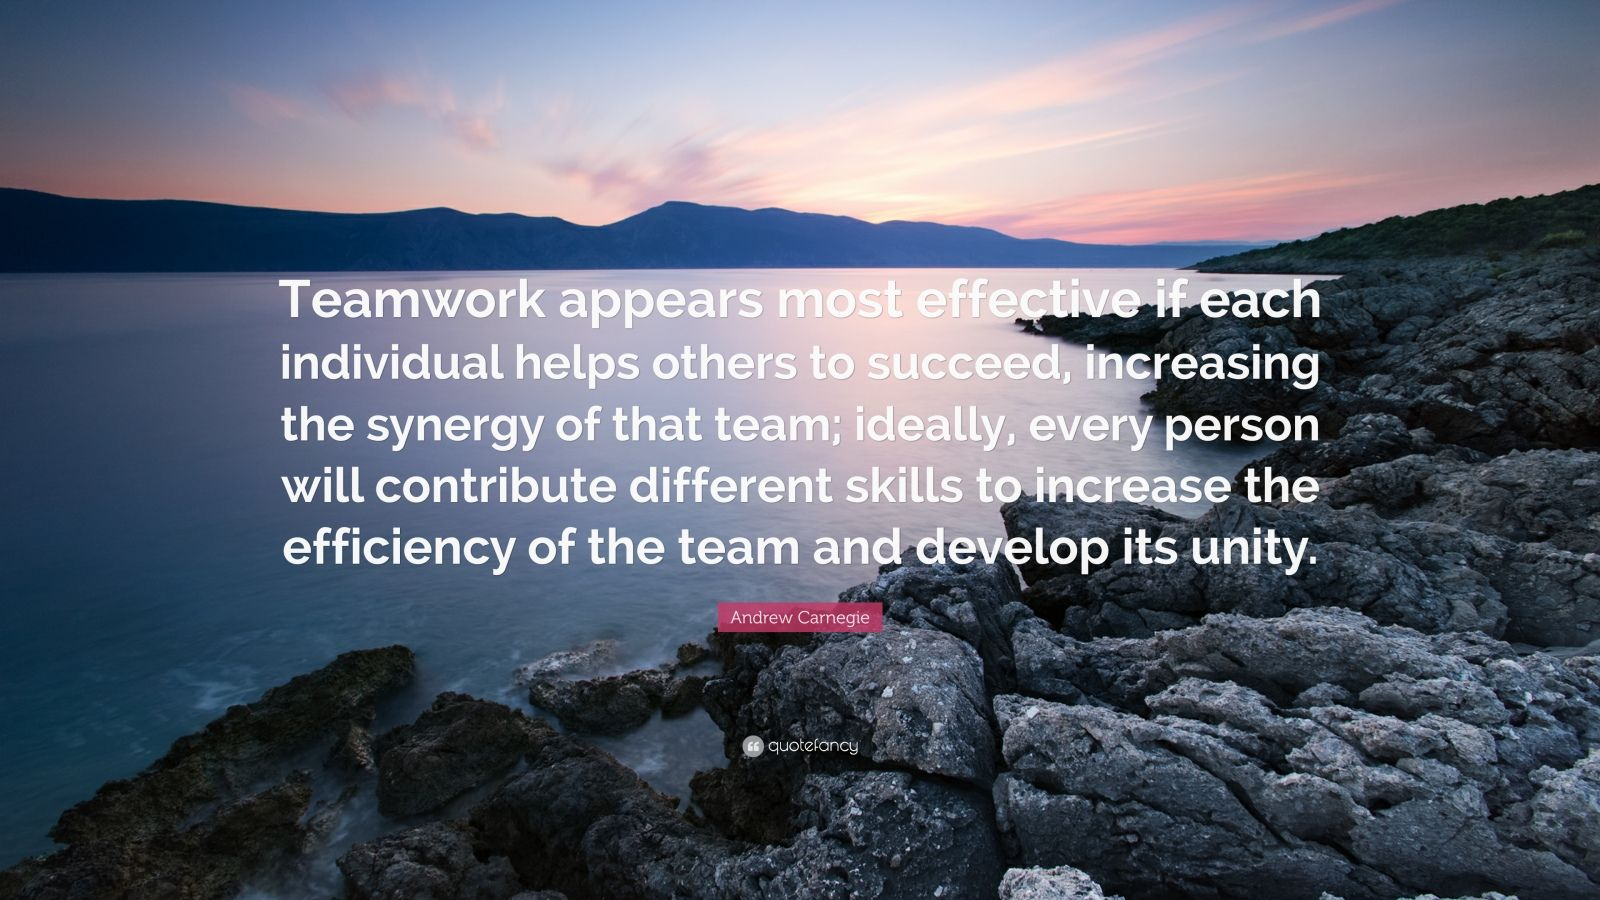 """Andrew Carnegie Quote: """"Teamwork appears most effective if each individual helps others to succeed, increasing the synergy of that team; ideally, every person will contribute different skills to increase the efficiency of the team and develop its unity."""""""